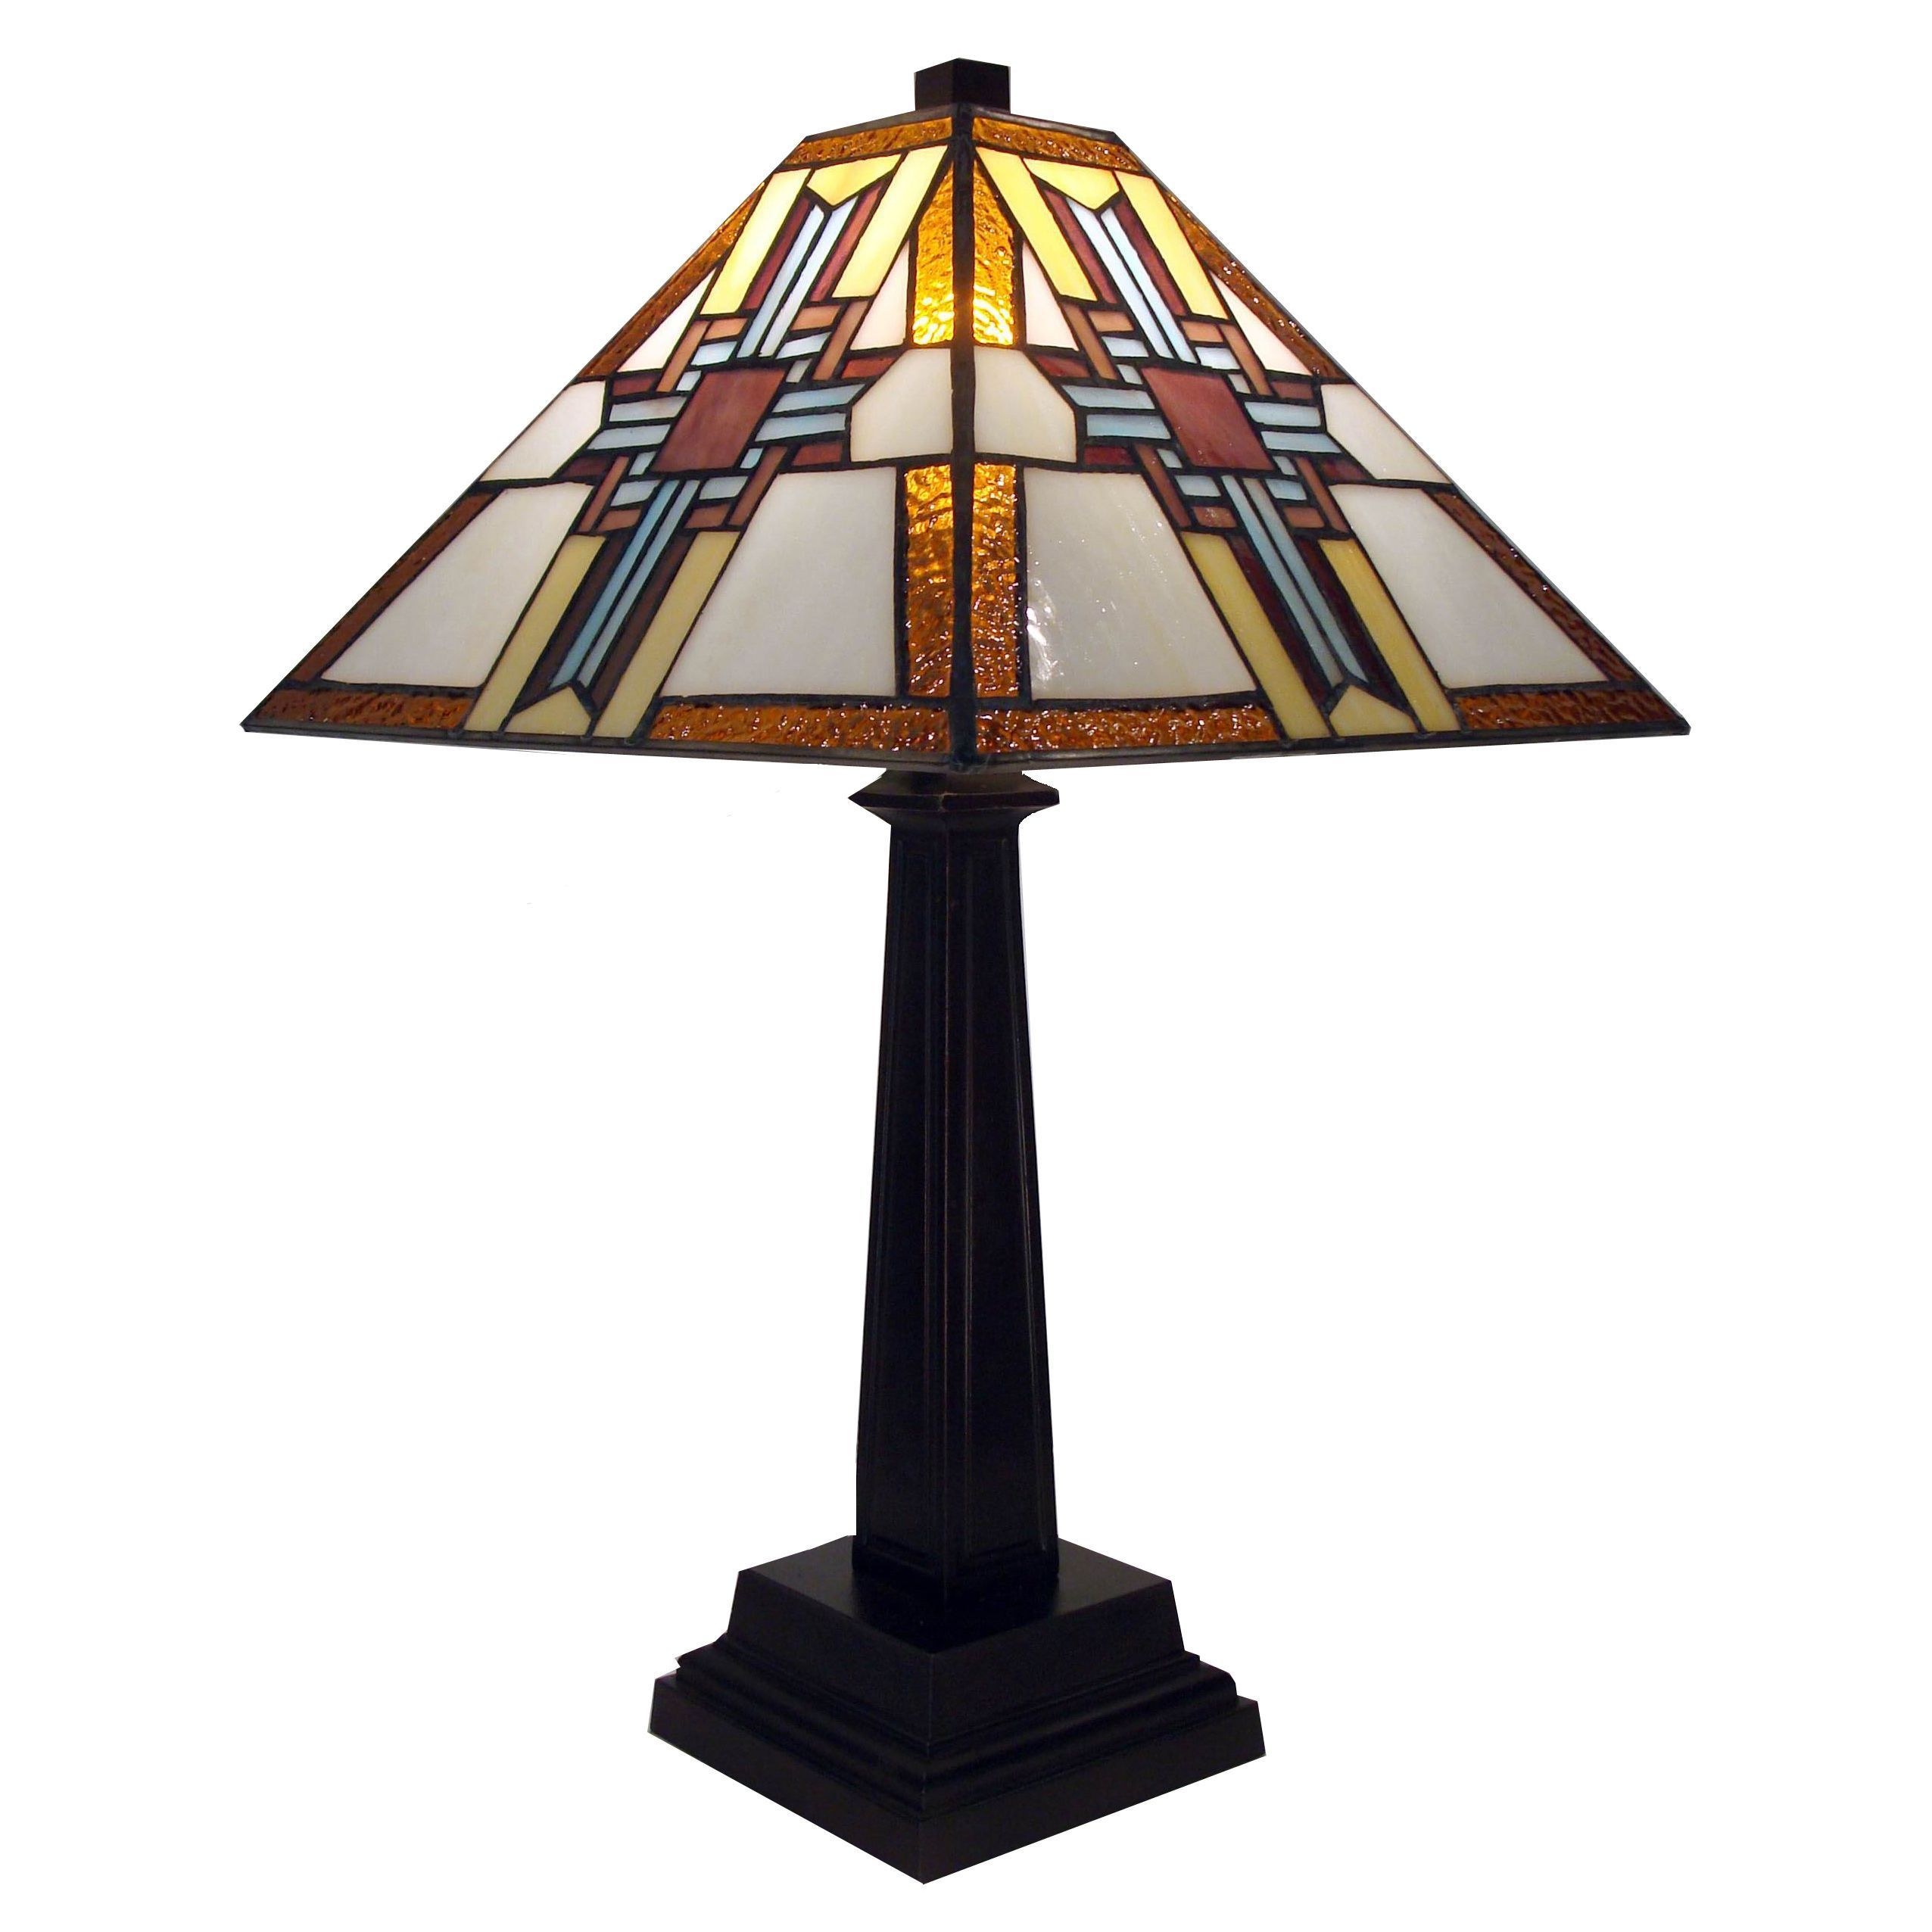 Tiffany Style Warehouse Of Tiffany Cross Table Lamp Brown Art Glass S Izobrazheniyami Lampy Tiffani Torshery Nastennye Svetilniki